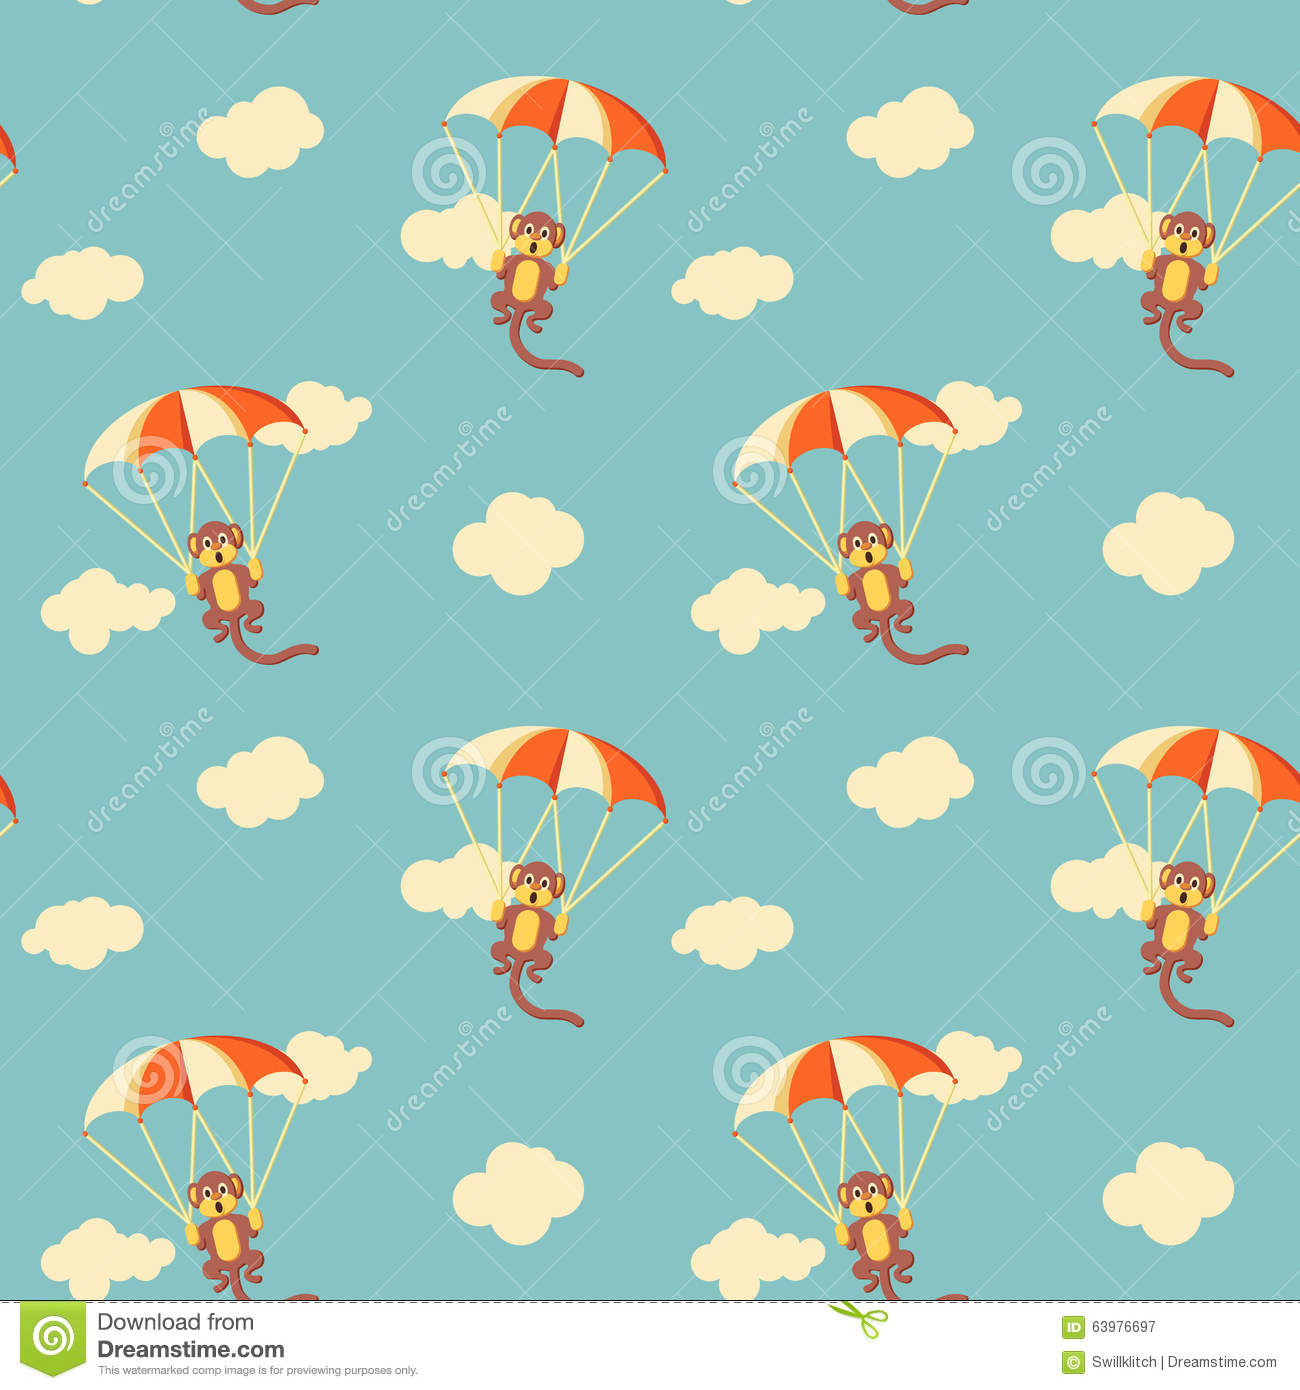 Pattern of monkeys with parachute